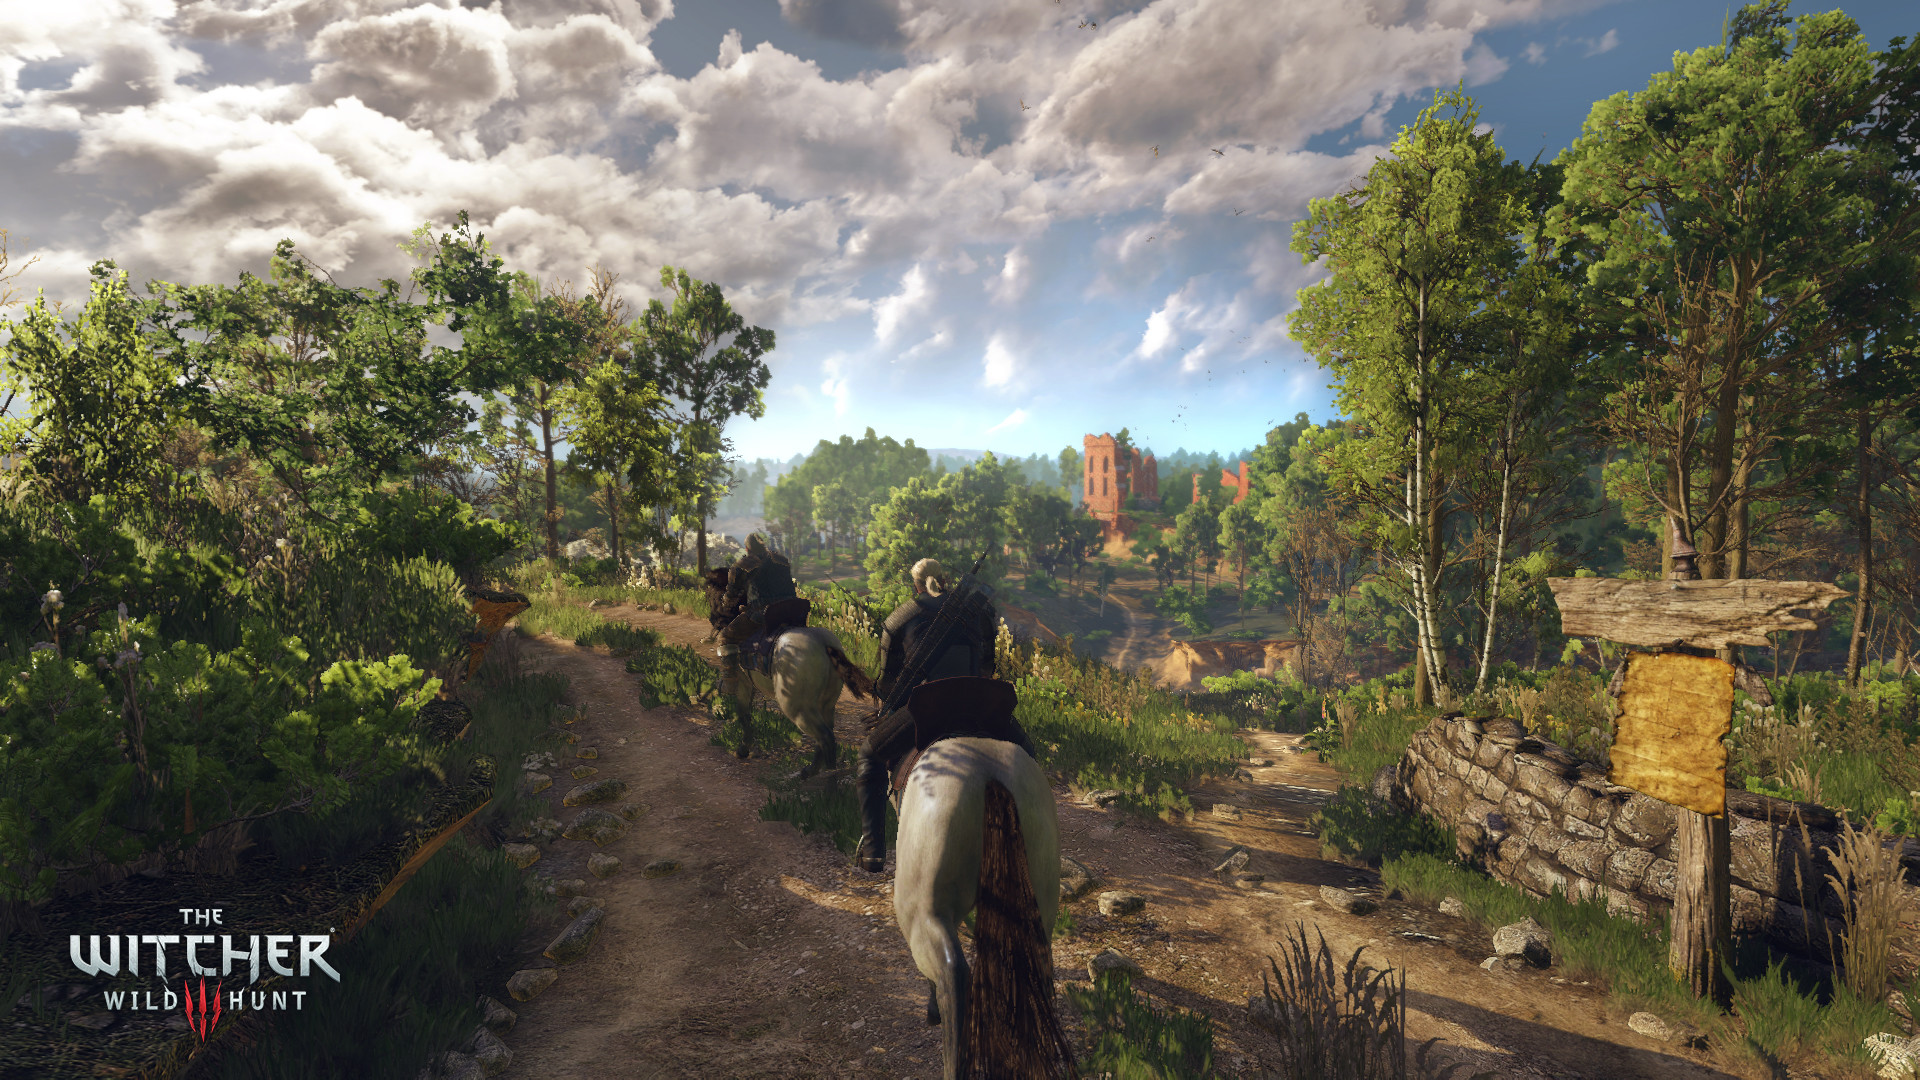 The Witcher 3: Wild Hunt Full HD Wallpaper